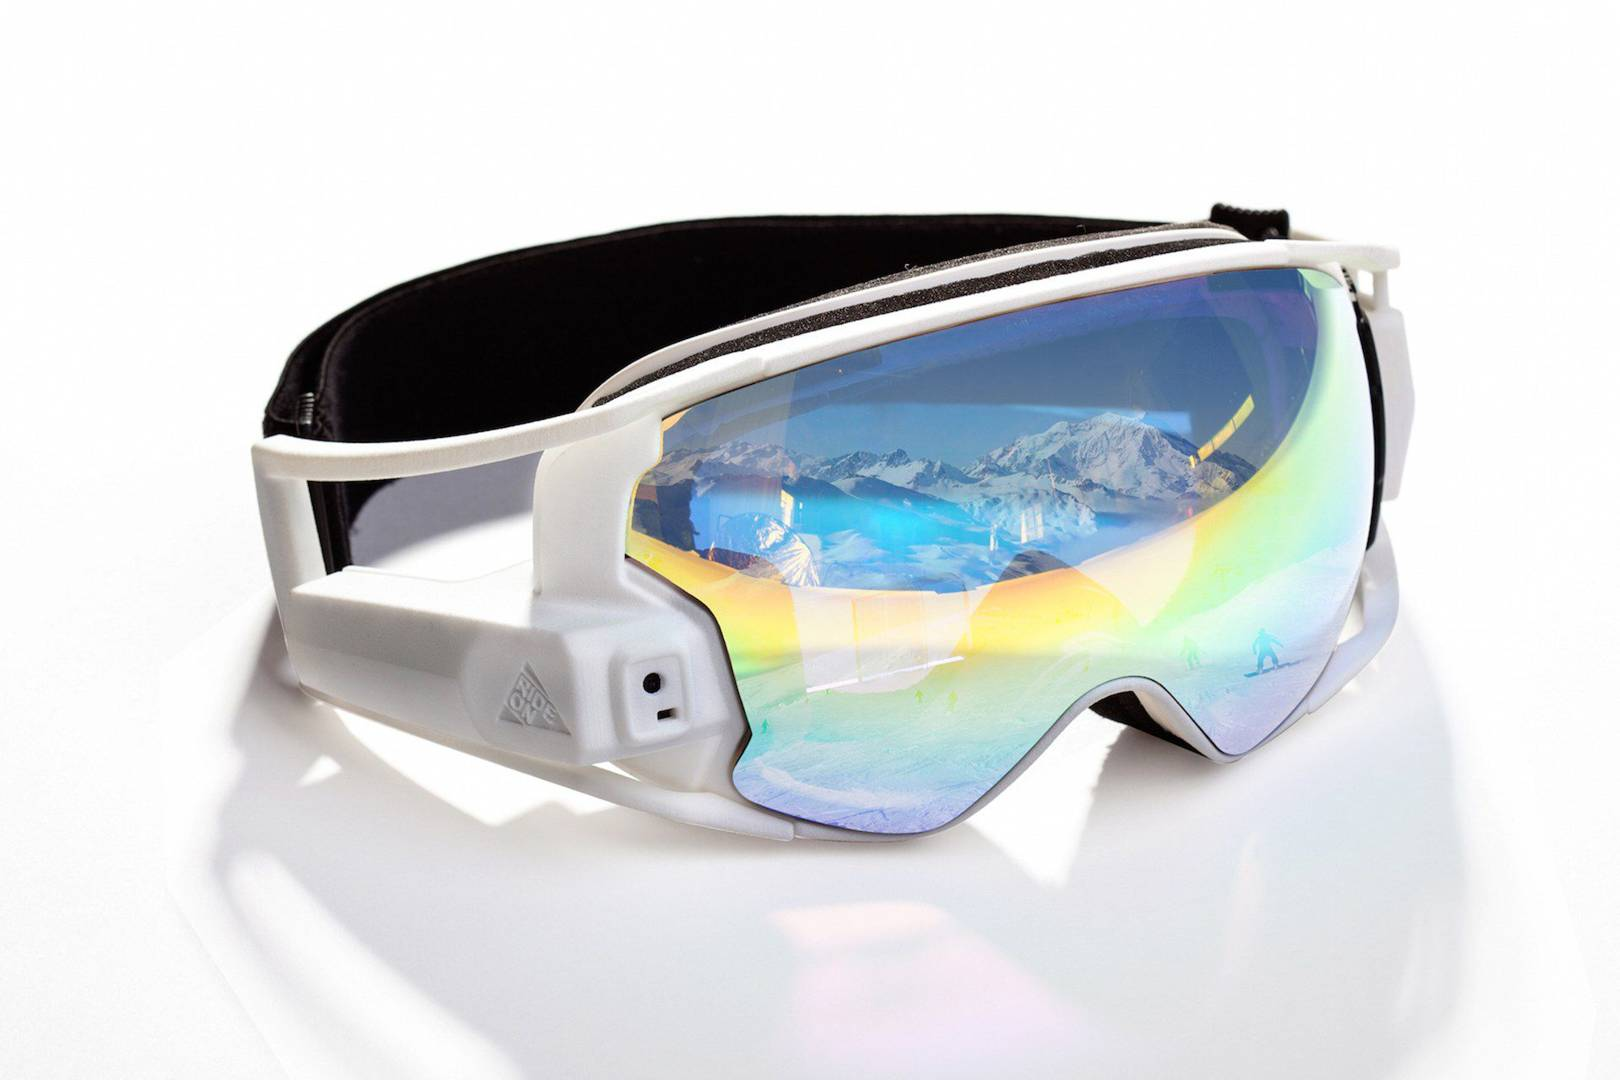 14a0044ba76 Hands-on with RideON s AR skiing goggles